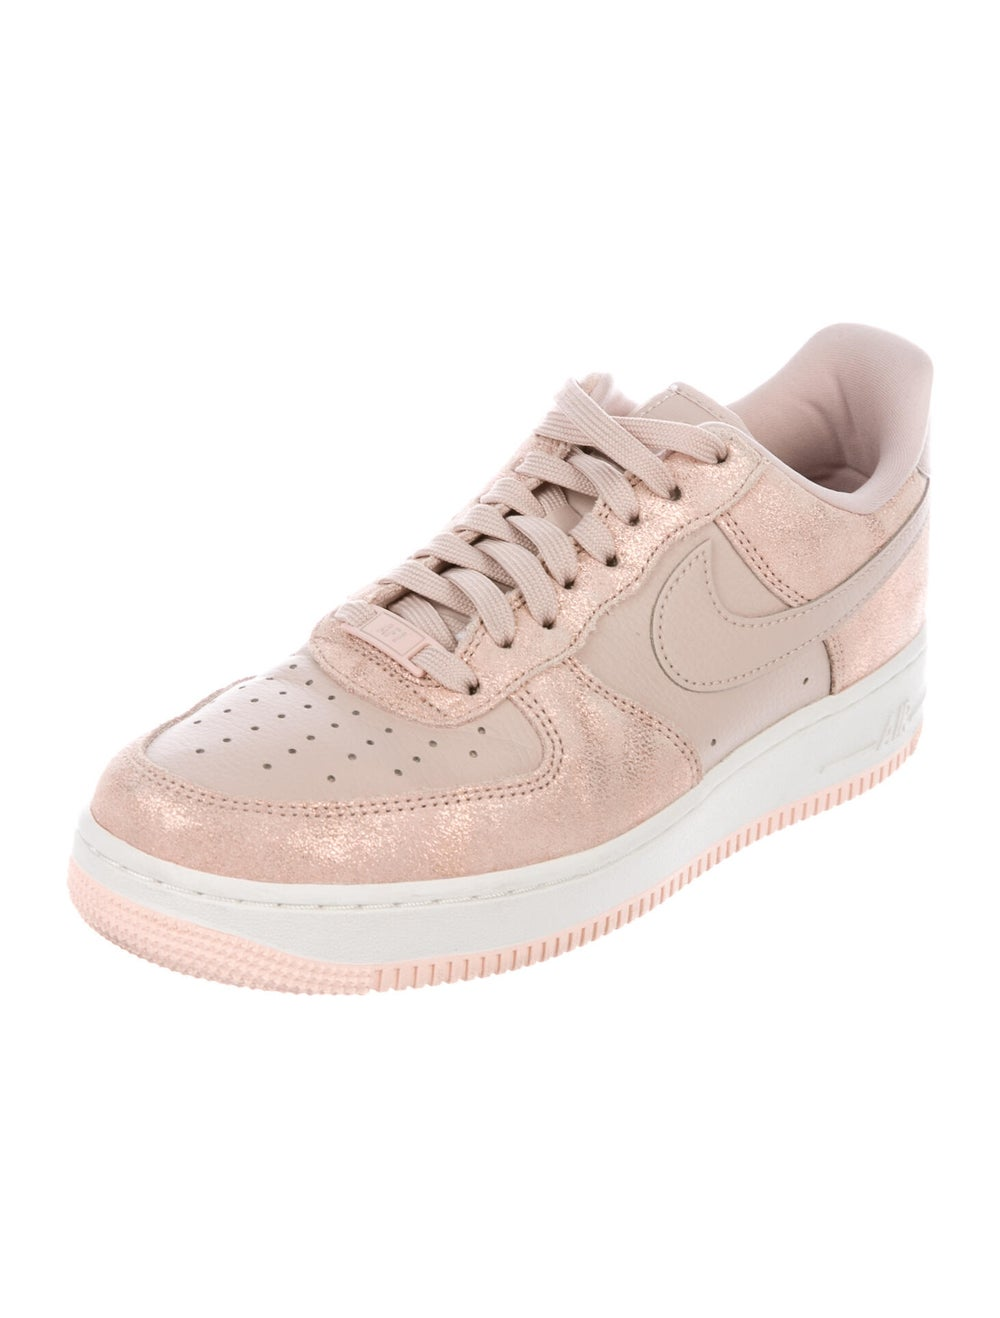 Nike Nike Air Force 1 Sneakers Metallic - image 2